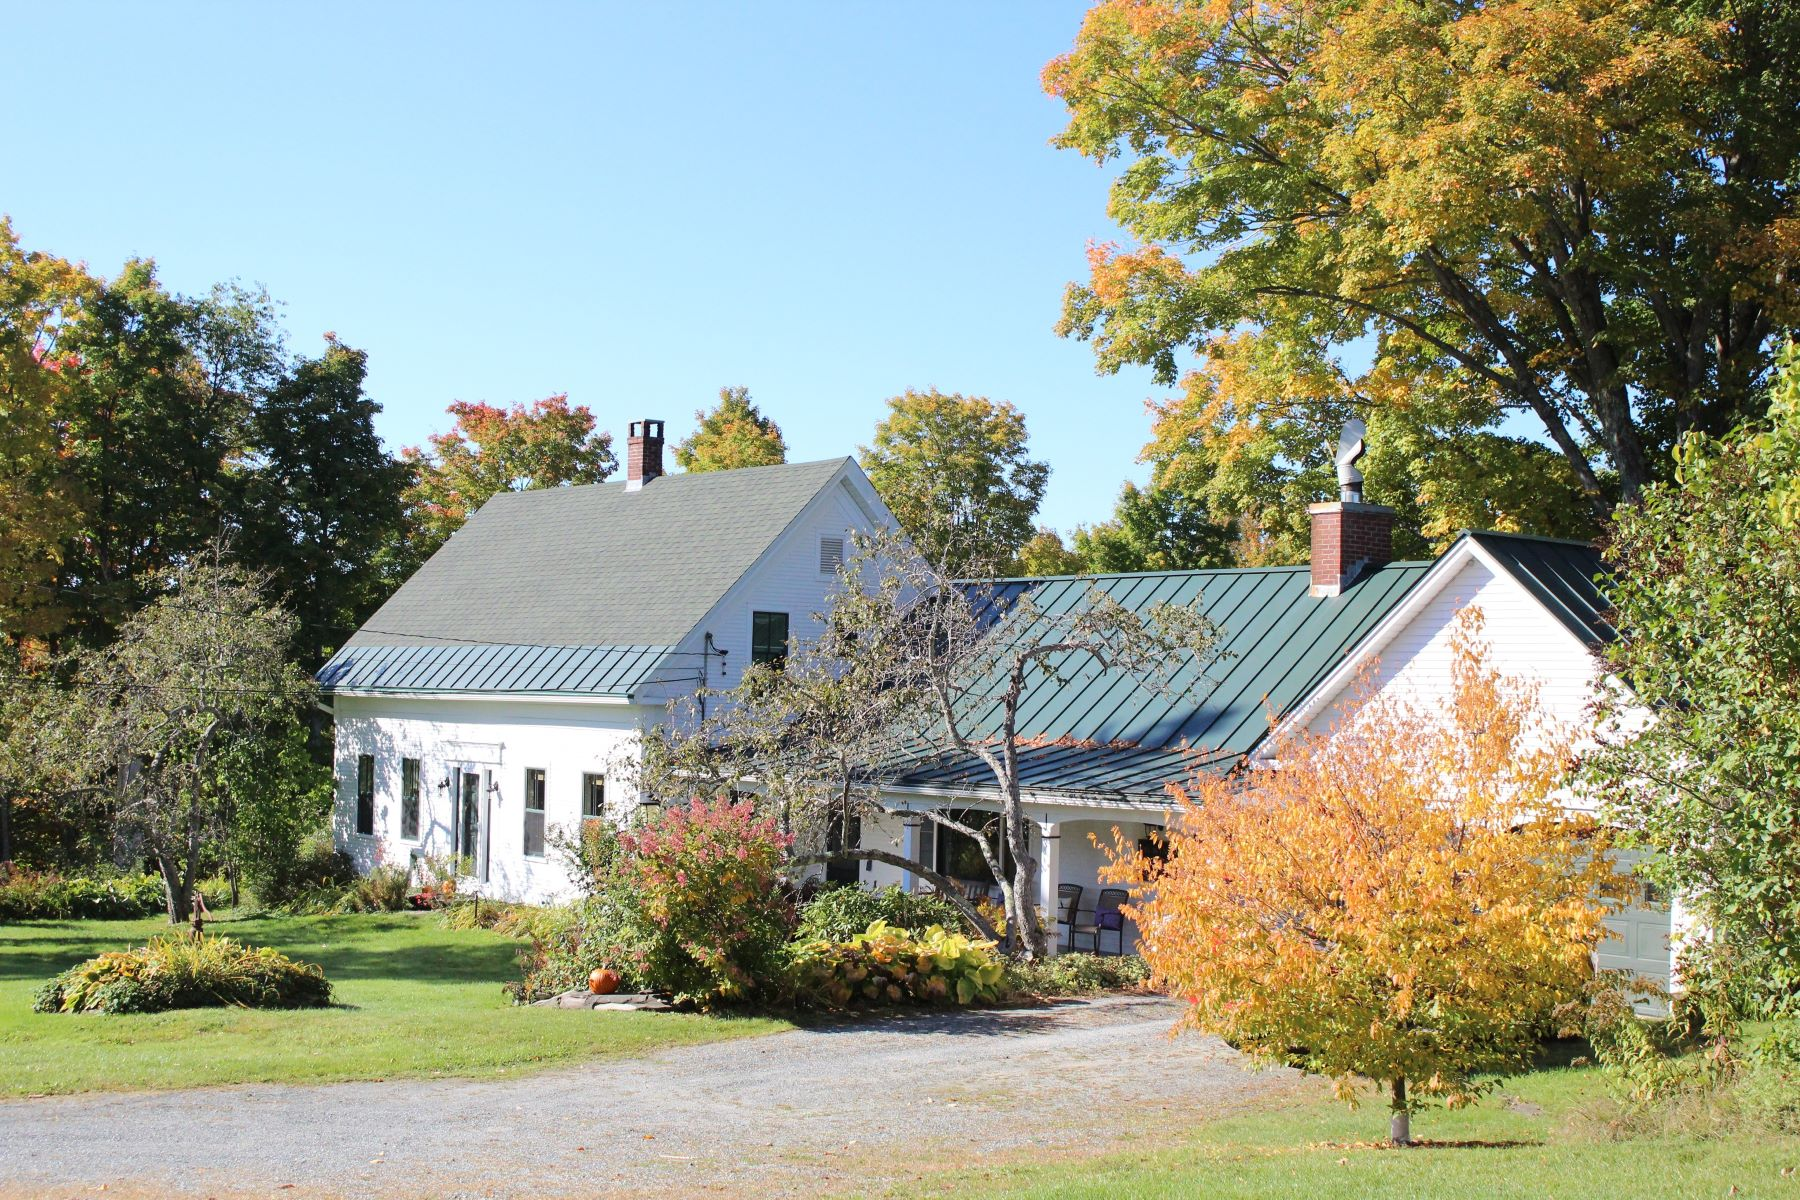 Single Family Home for Sale at Farm has views, orchards, efficiency 2317 North, Barnard, Vermont, 05031 United States